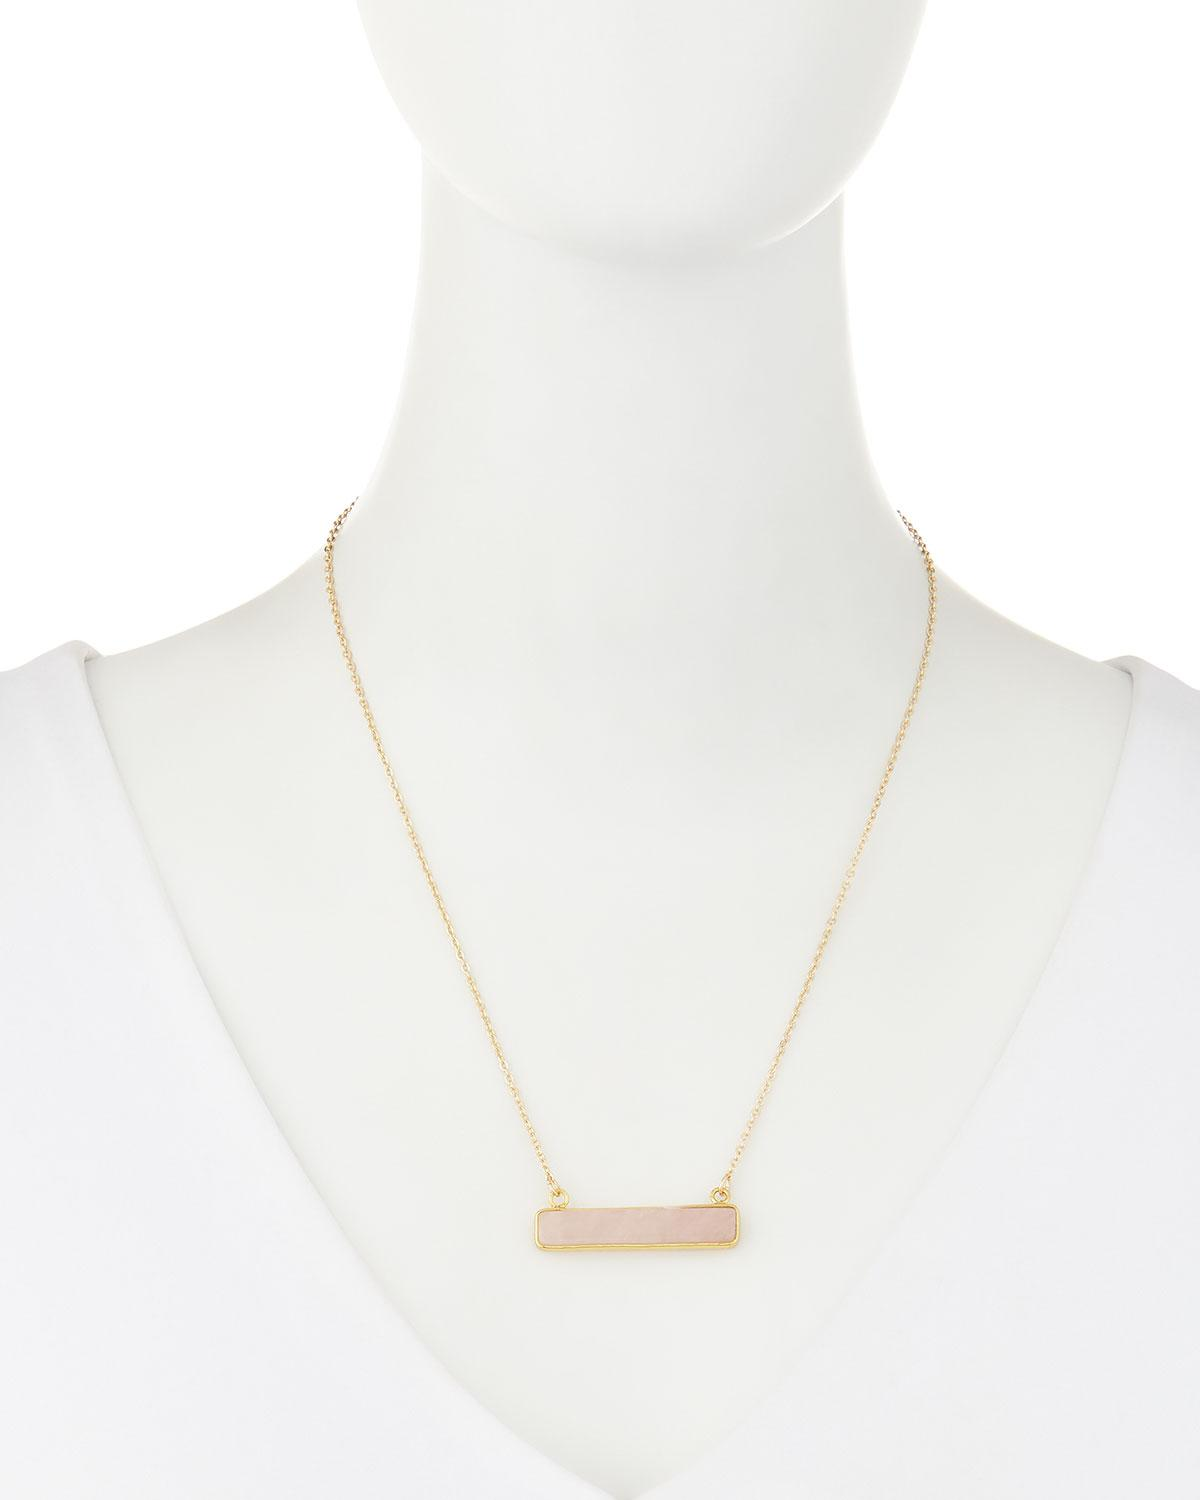 Panacea Stone Bar Pendant Necklace, Light Pink